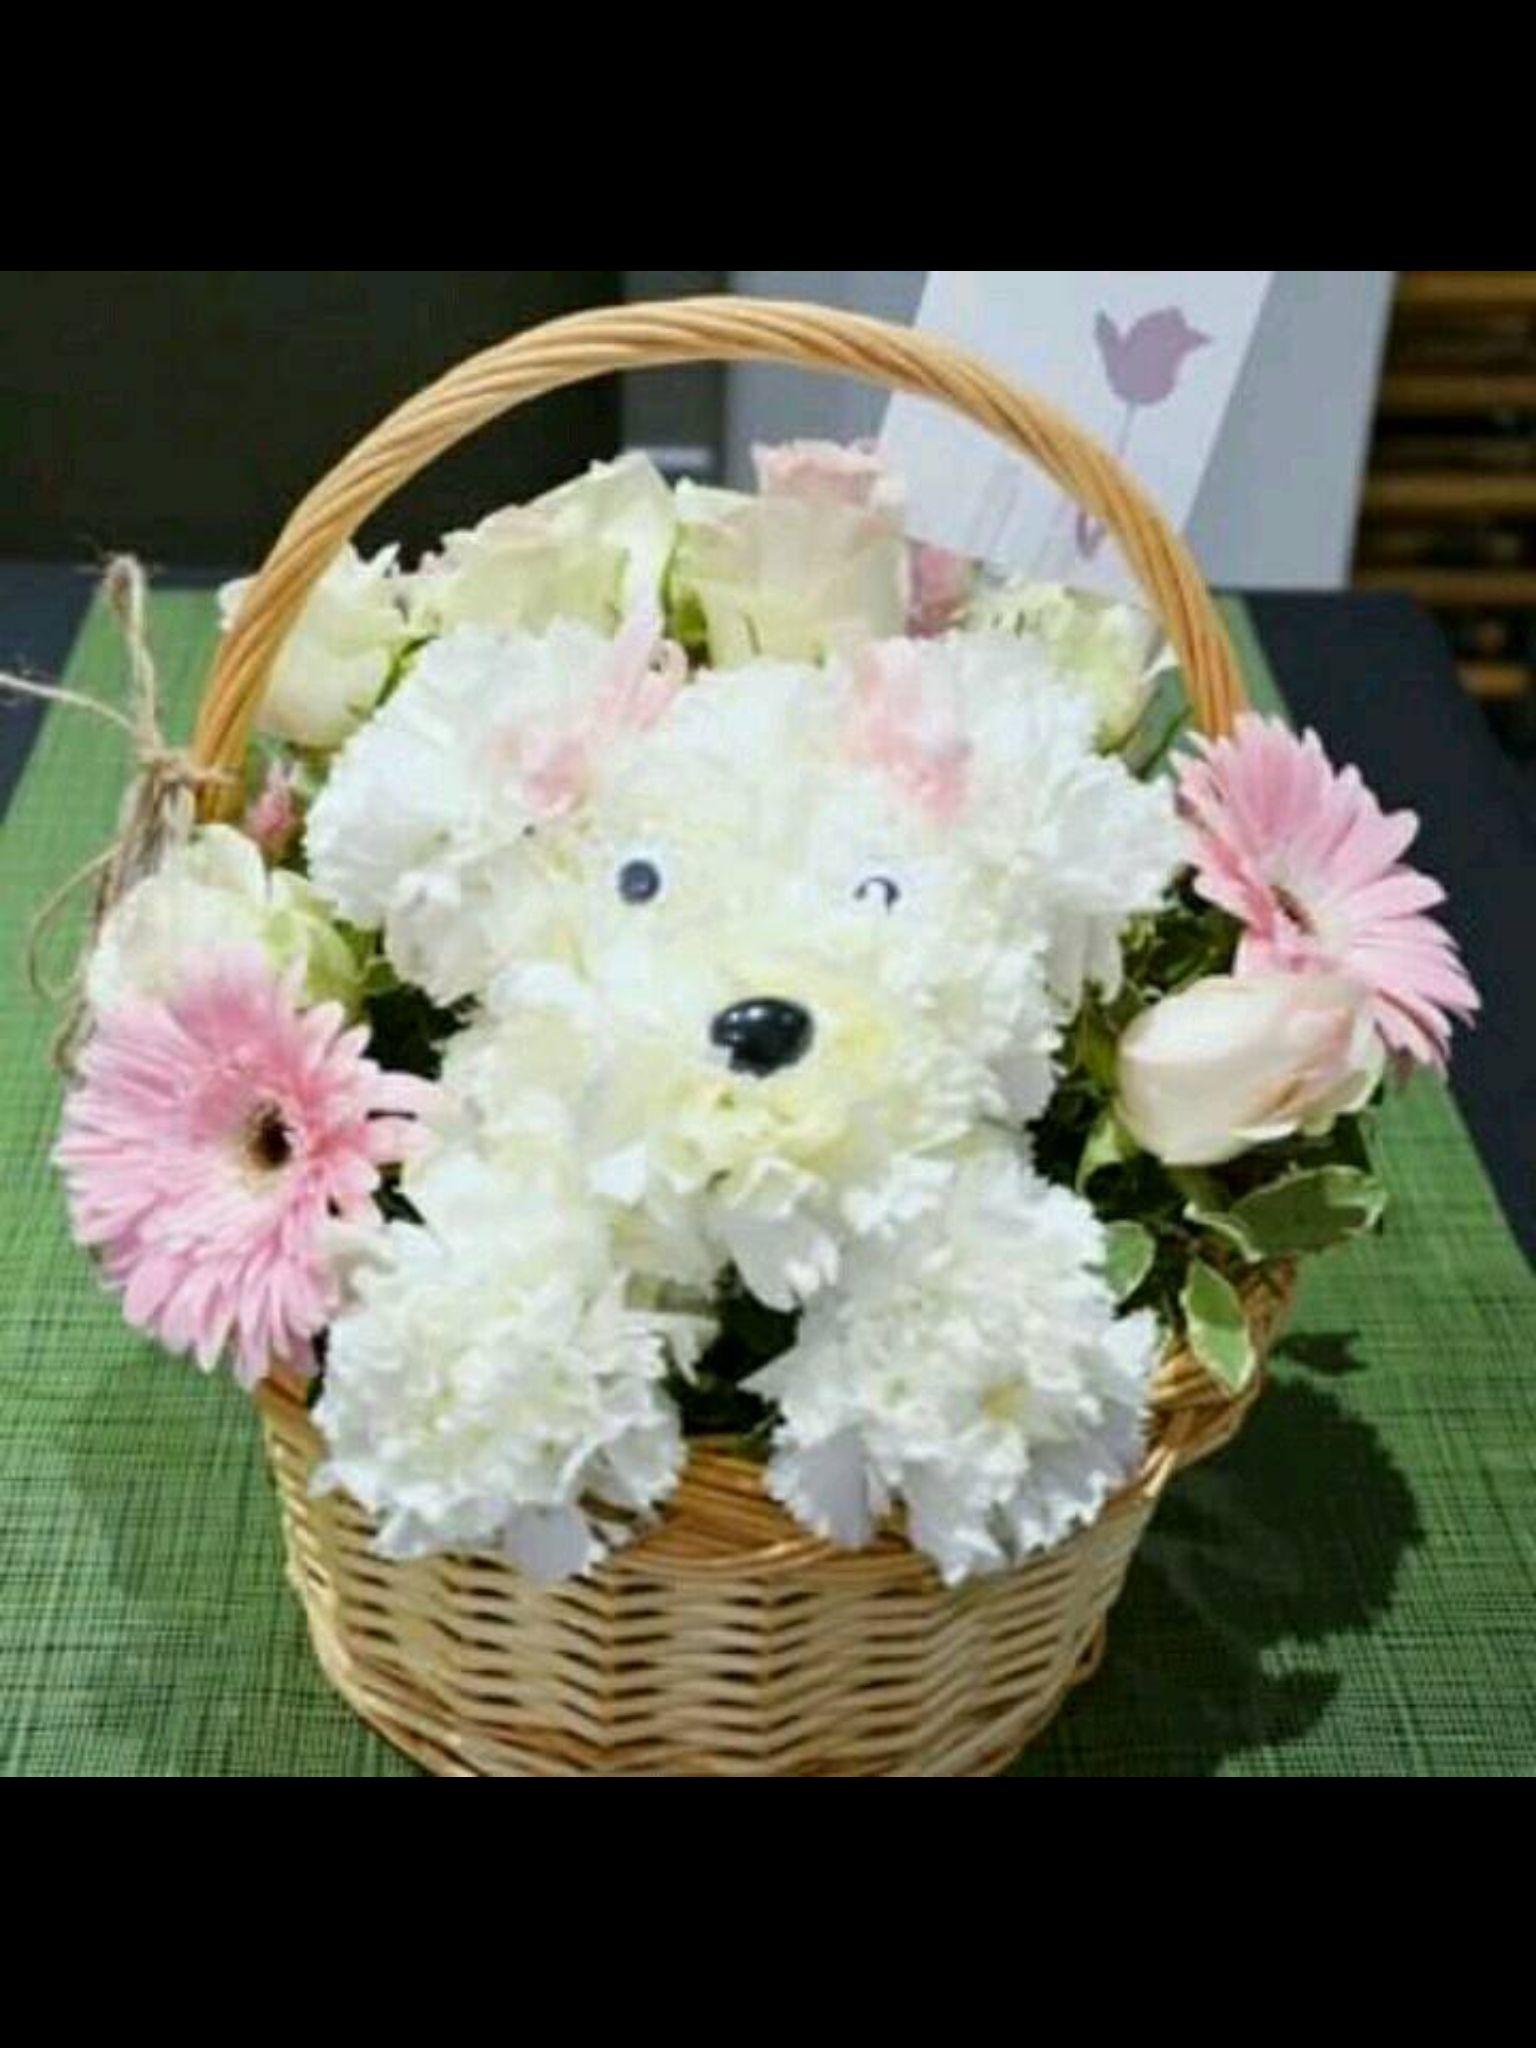 Doggie crafty pinterest doggies flower arrangements and flower adorable chrysanthemum puppywith pink gerber daisies white roses flower basket bouquet izmirmasajfo Gallery